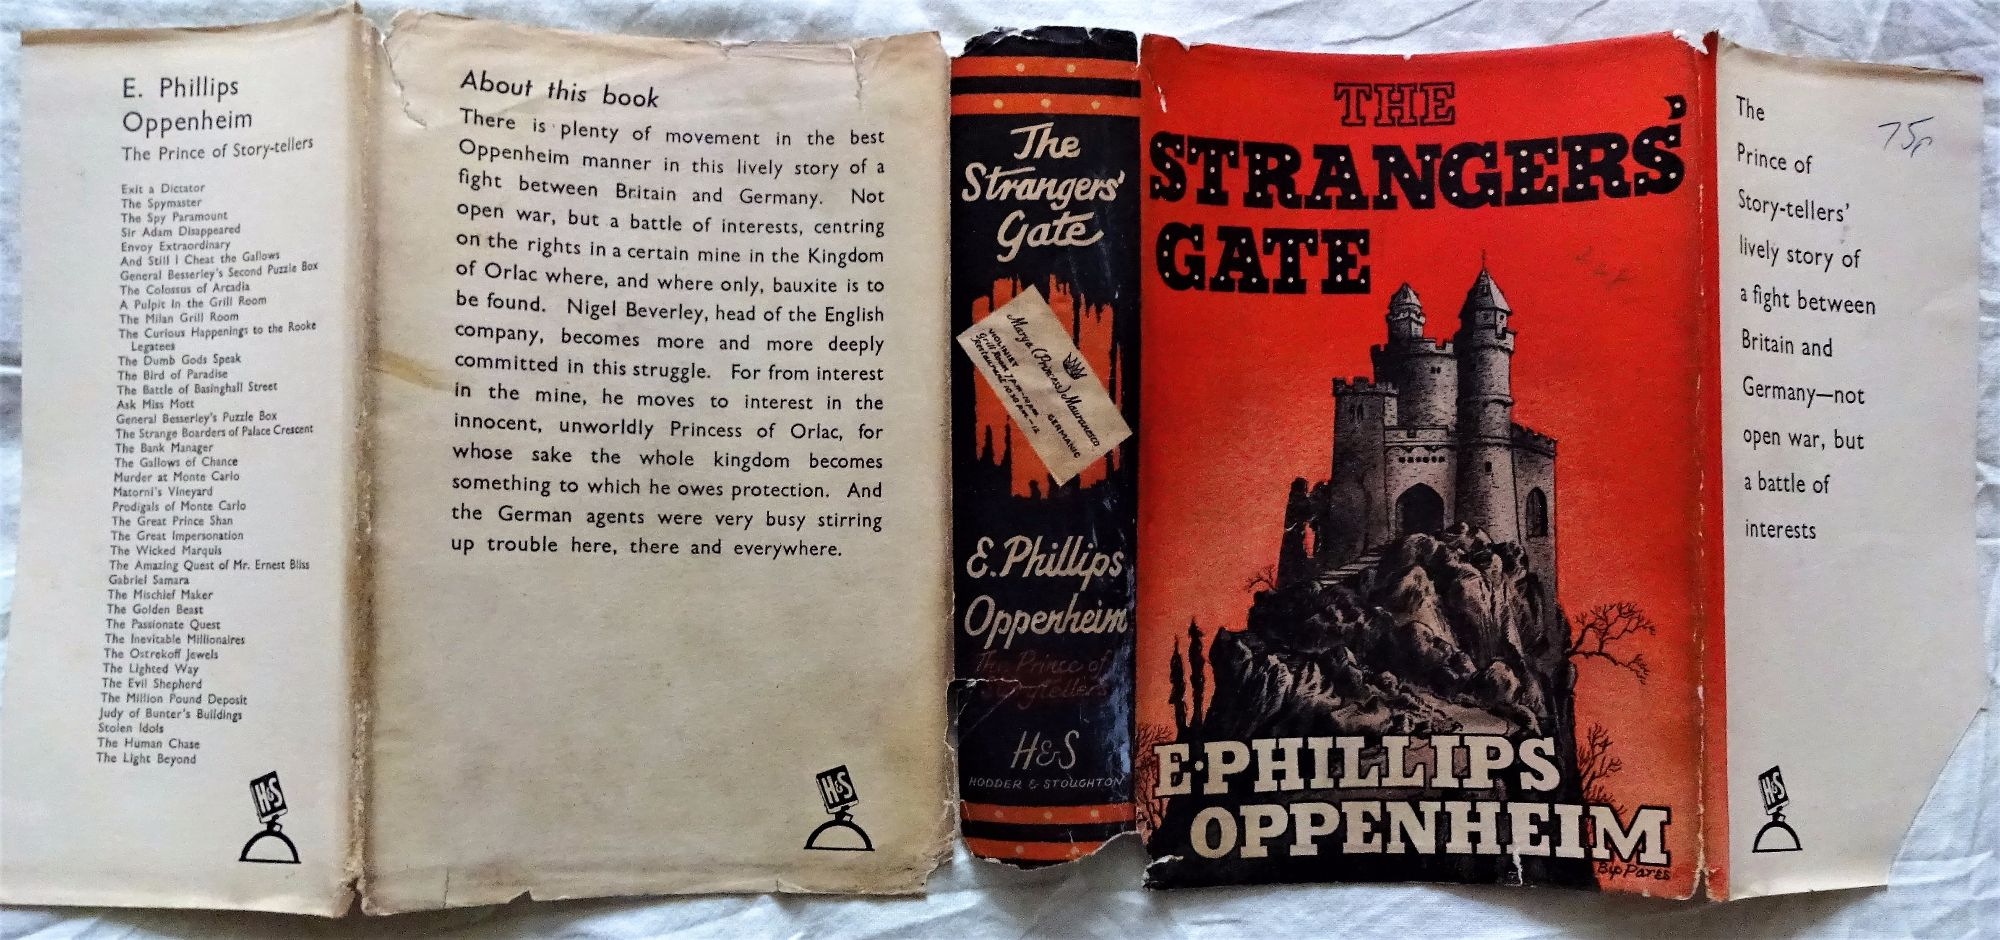 E. Phillips Oppenheim, The Strangers' Gate, Hodder & Stoughton, 1940. 1st Edition.